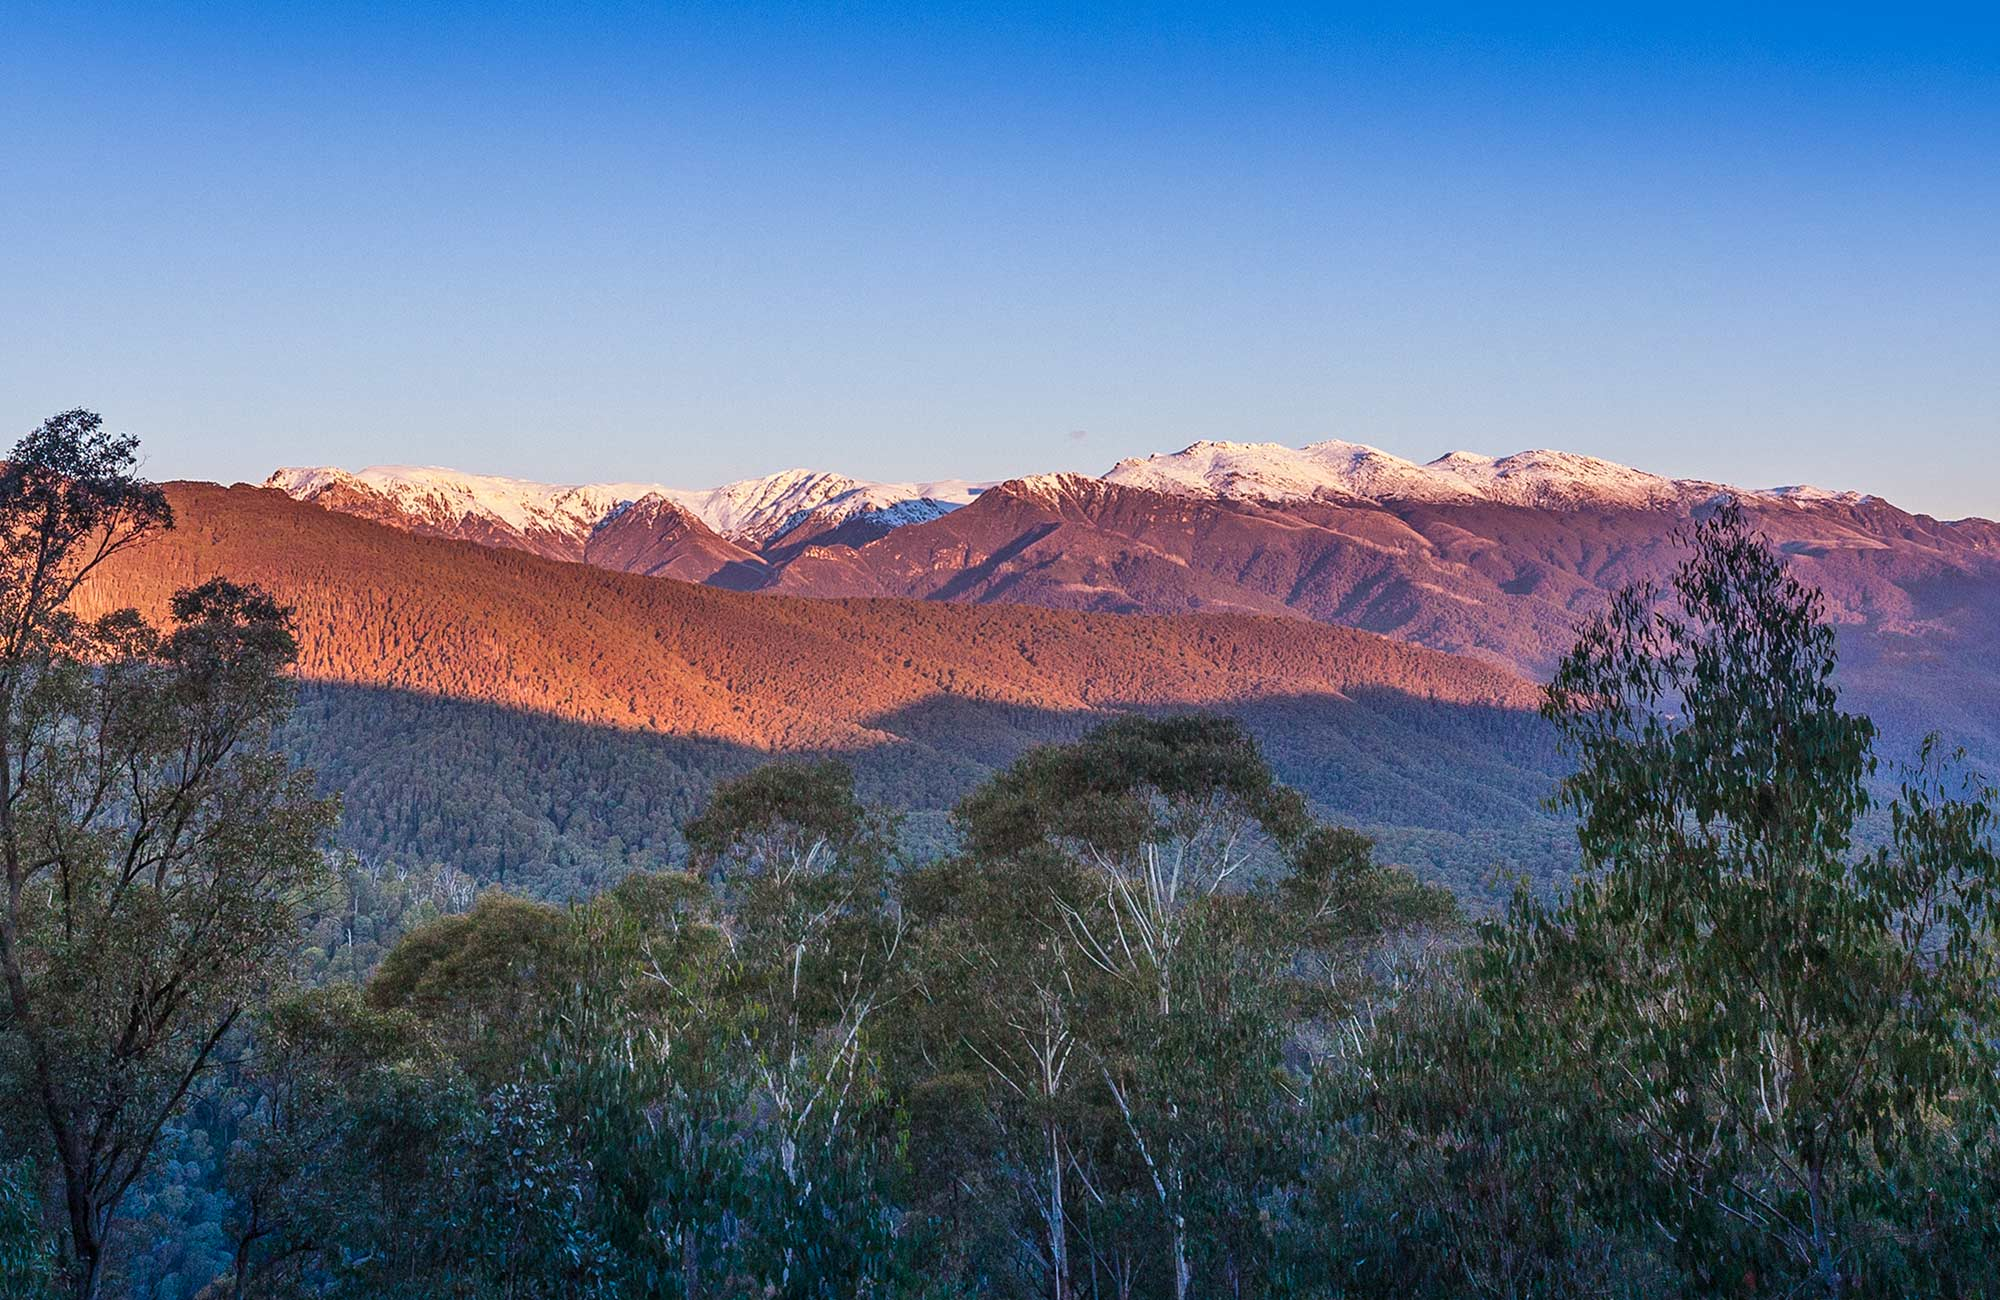 Scammells lookout, Kosciuszko National Park. Photo: Murray Vanderveer